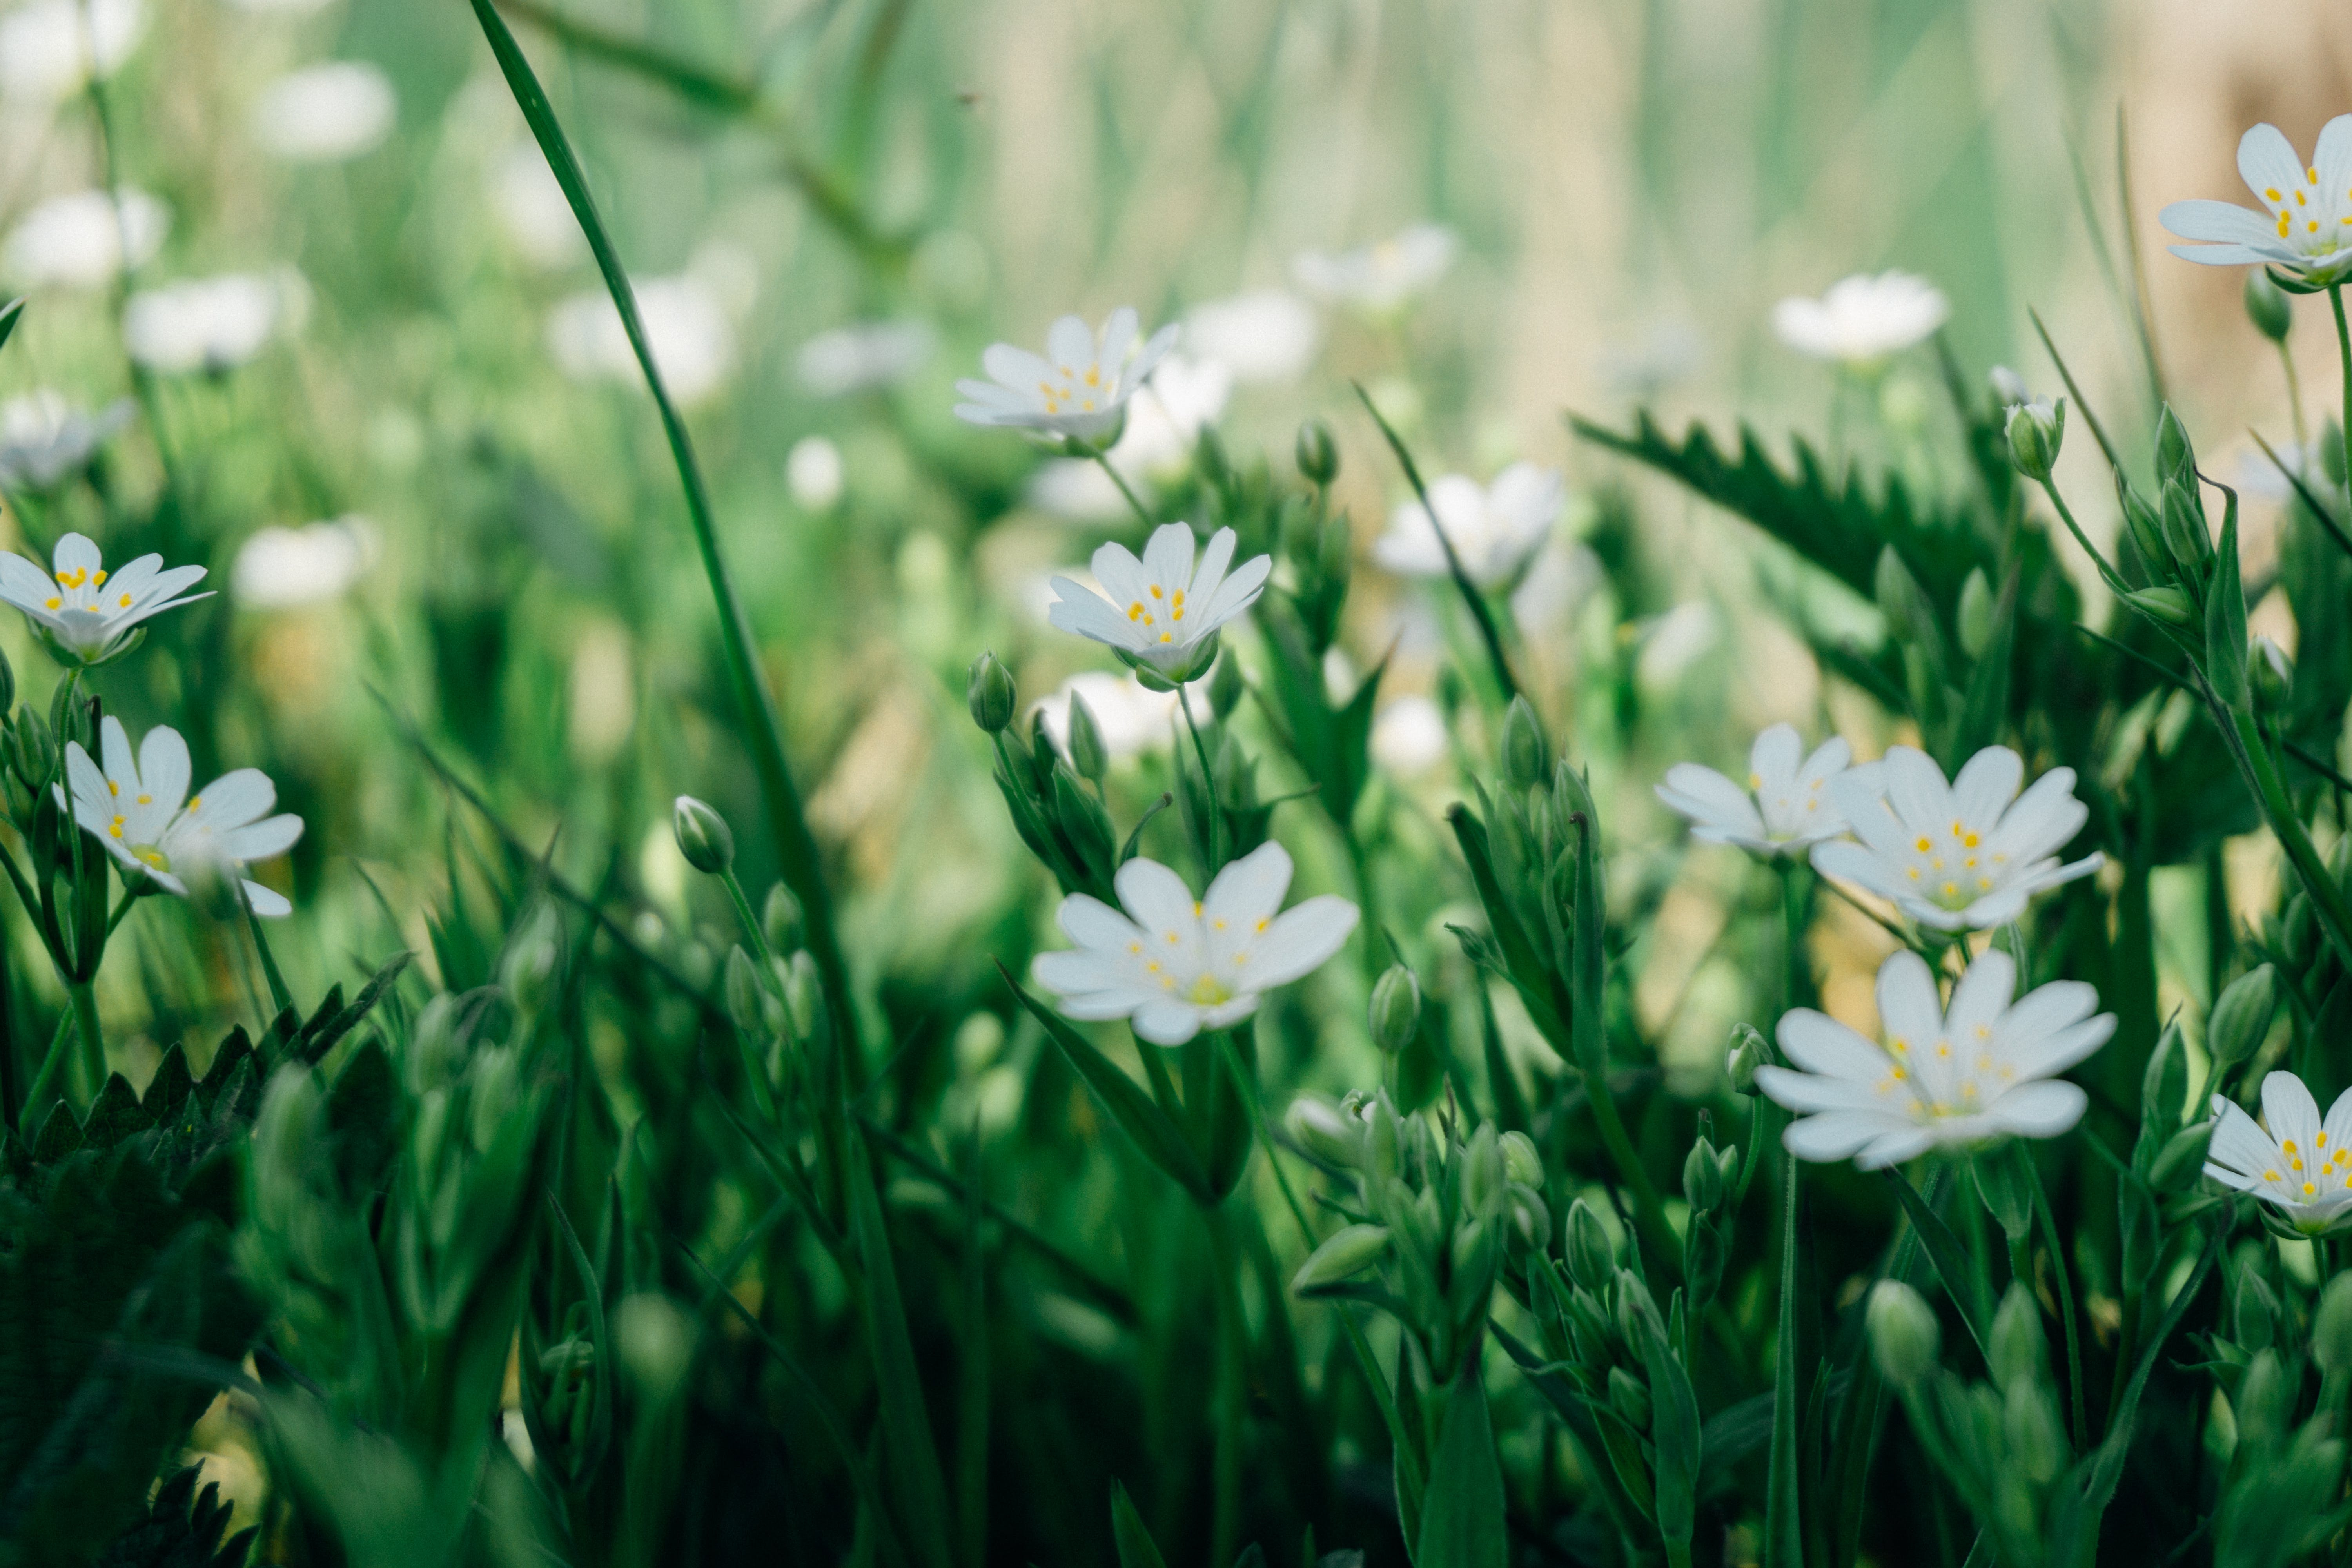 Selective Focus Photography of White Marguerite Daisy Flower